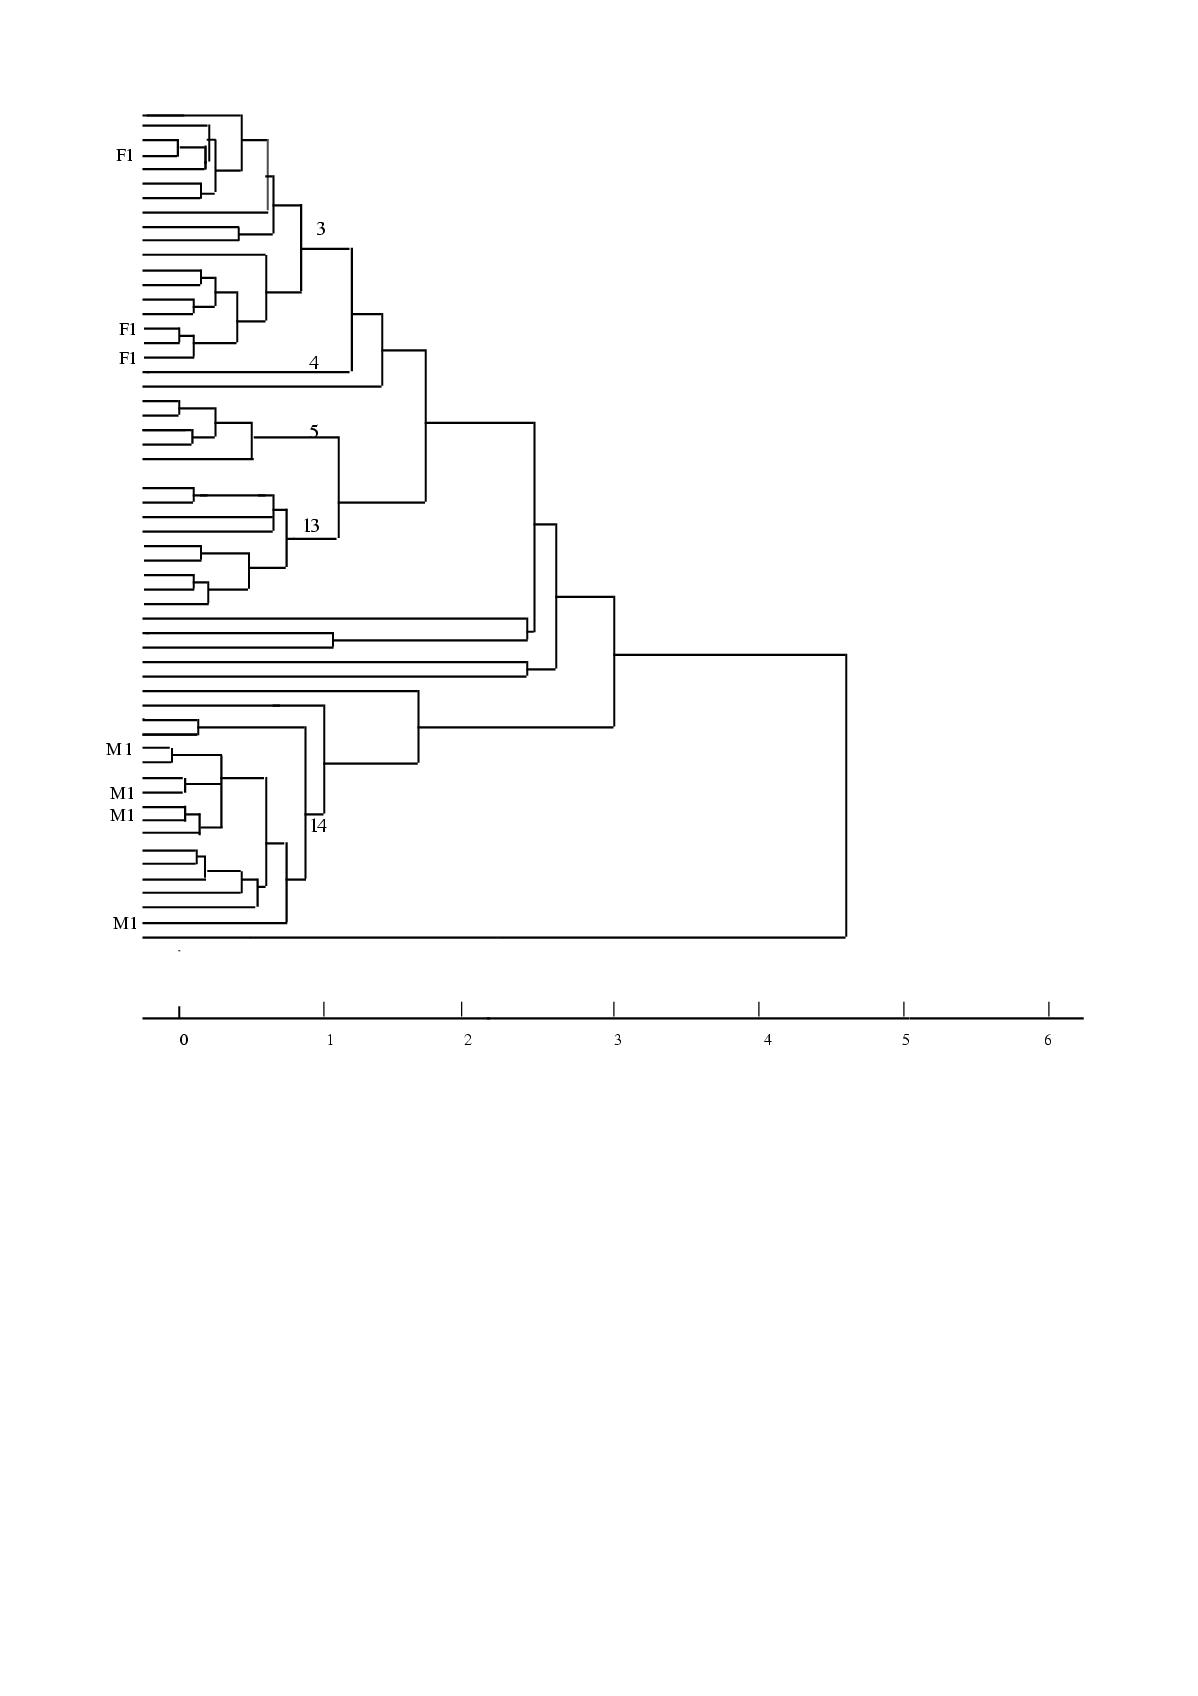 http://static-content.springer.com/image/art%3A10.1186%2F1472-6785-2-6/MediaObjects/12898_2001_Article_12_Fig2_HTML.jpg